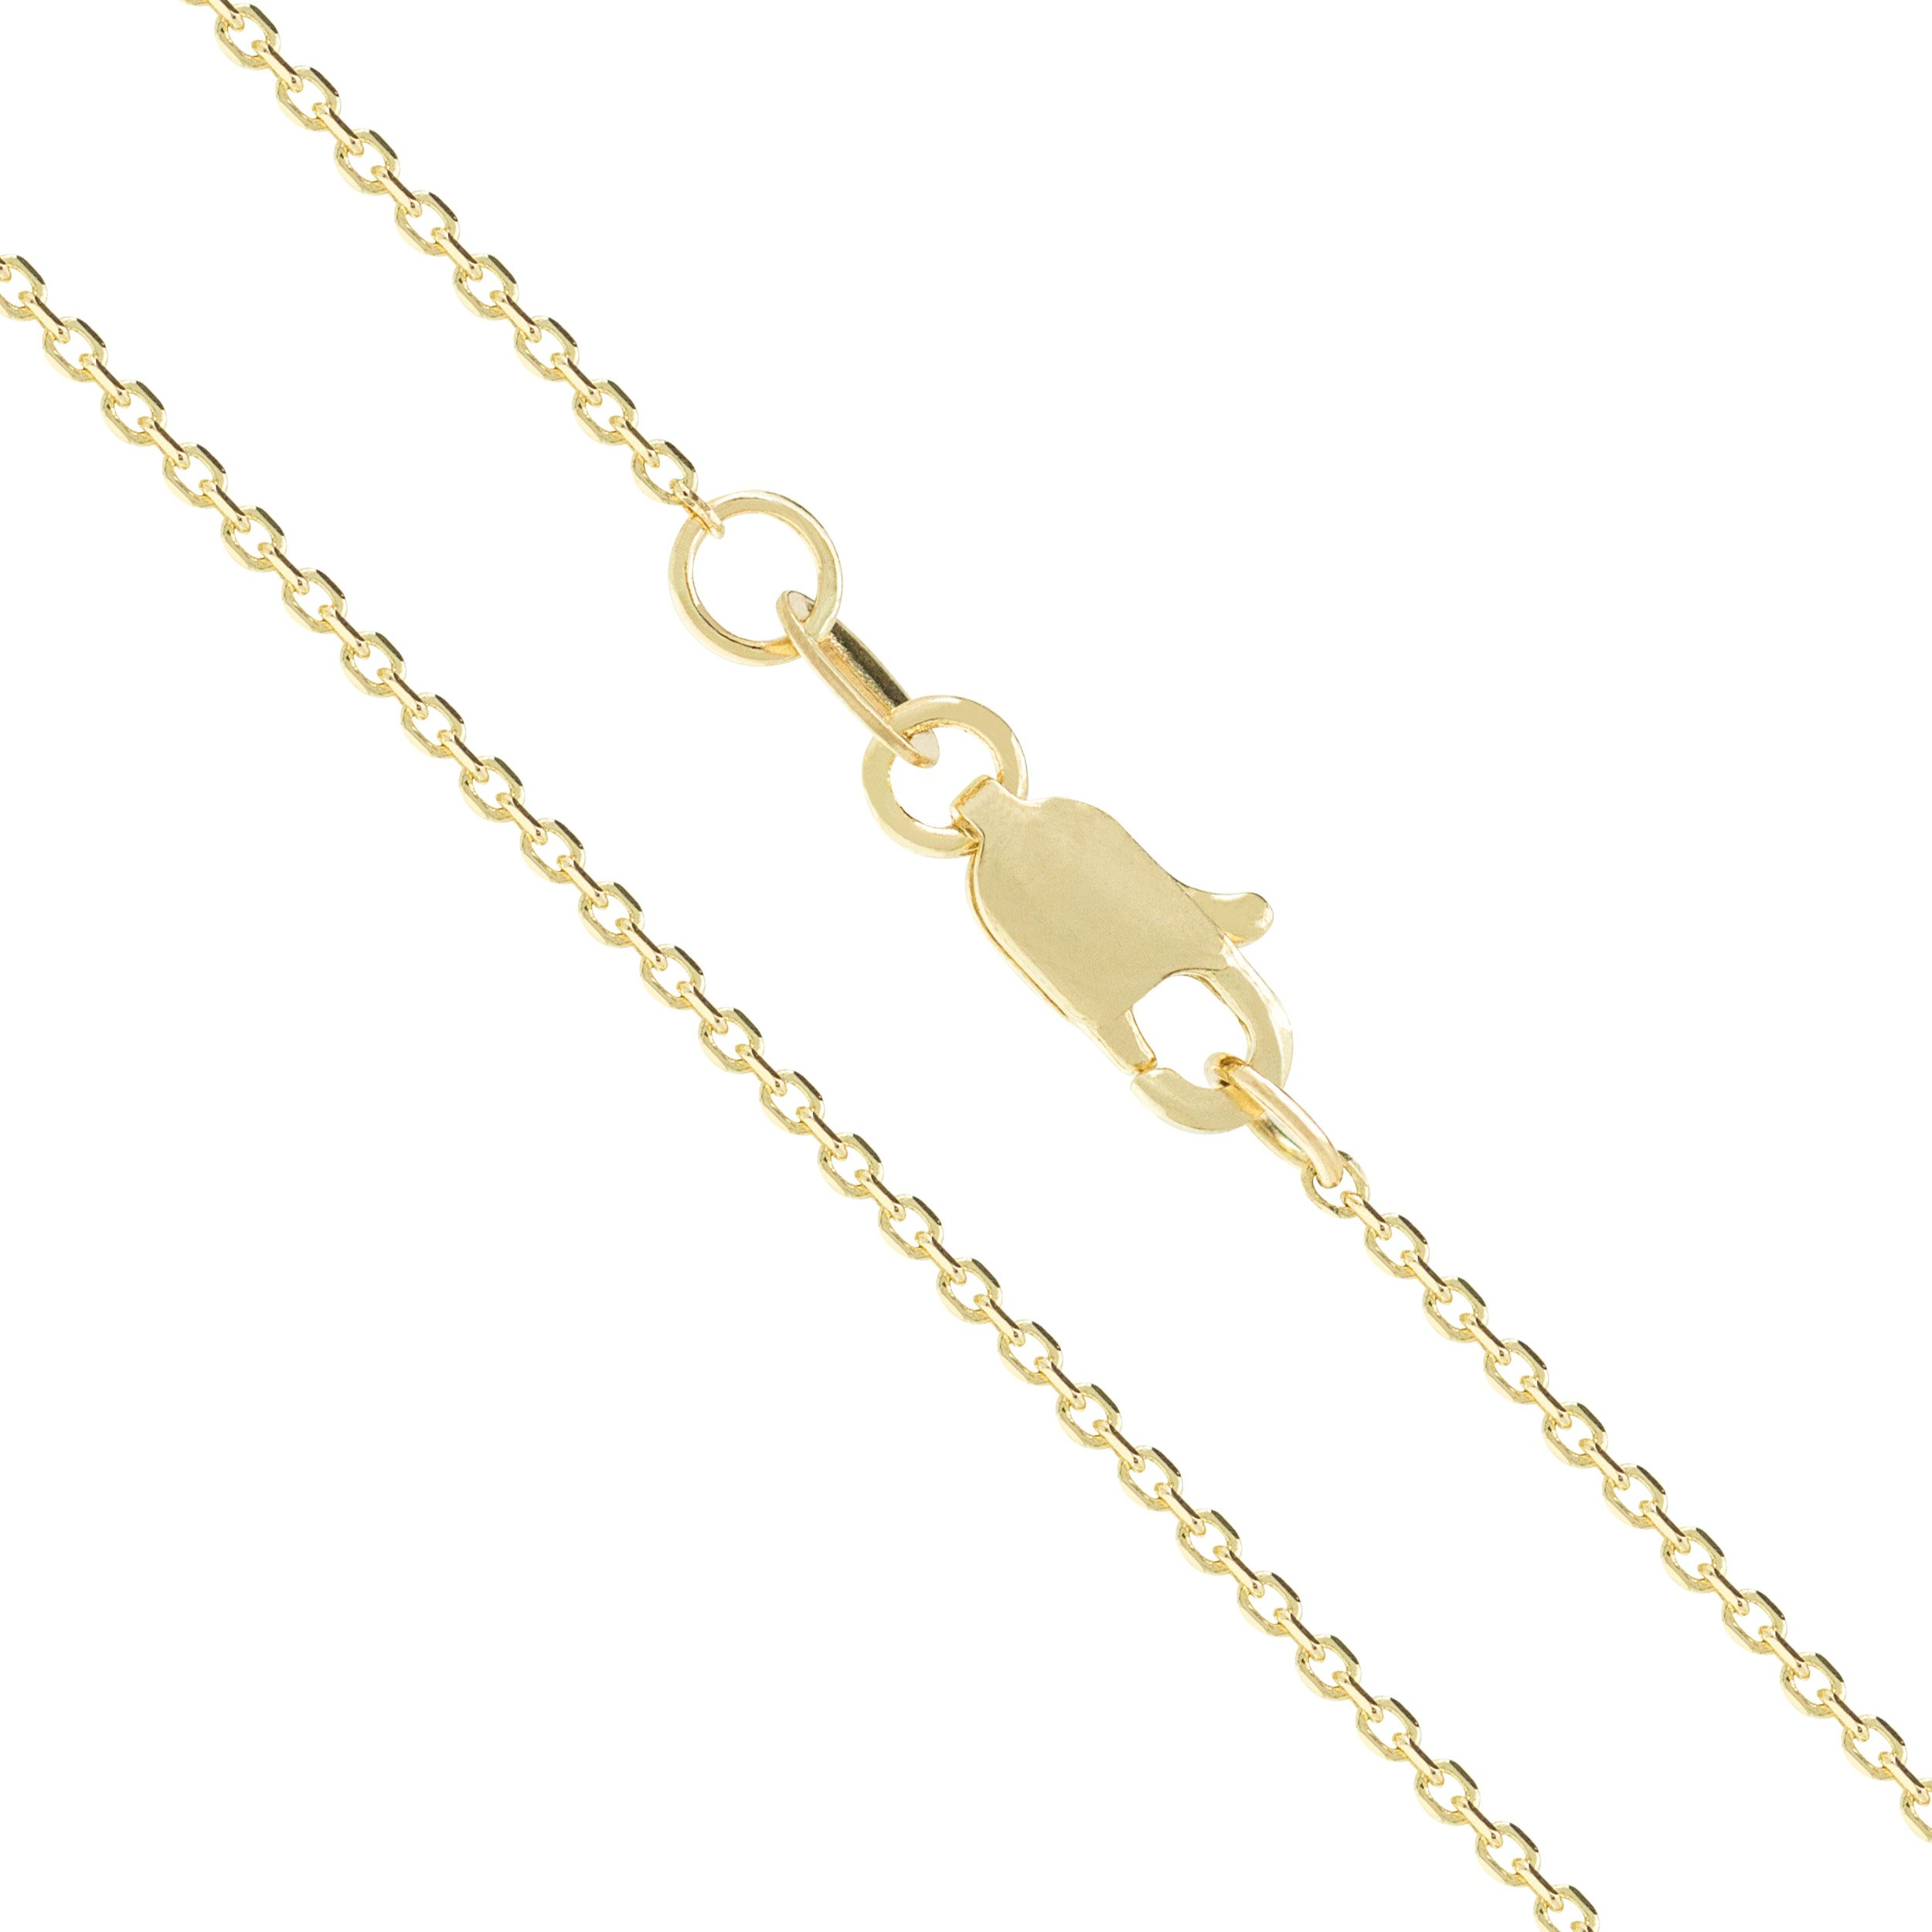 14K Solid Yellow Gold 30 Gauge 0.8mm Cable Chain Necklace - 20 Inches